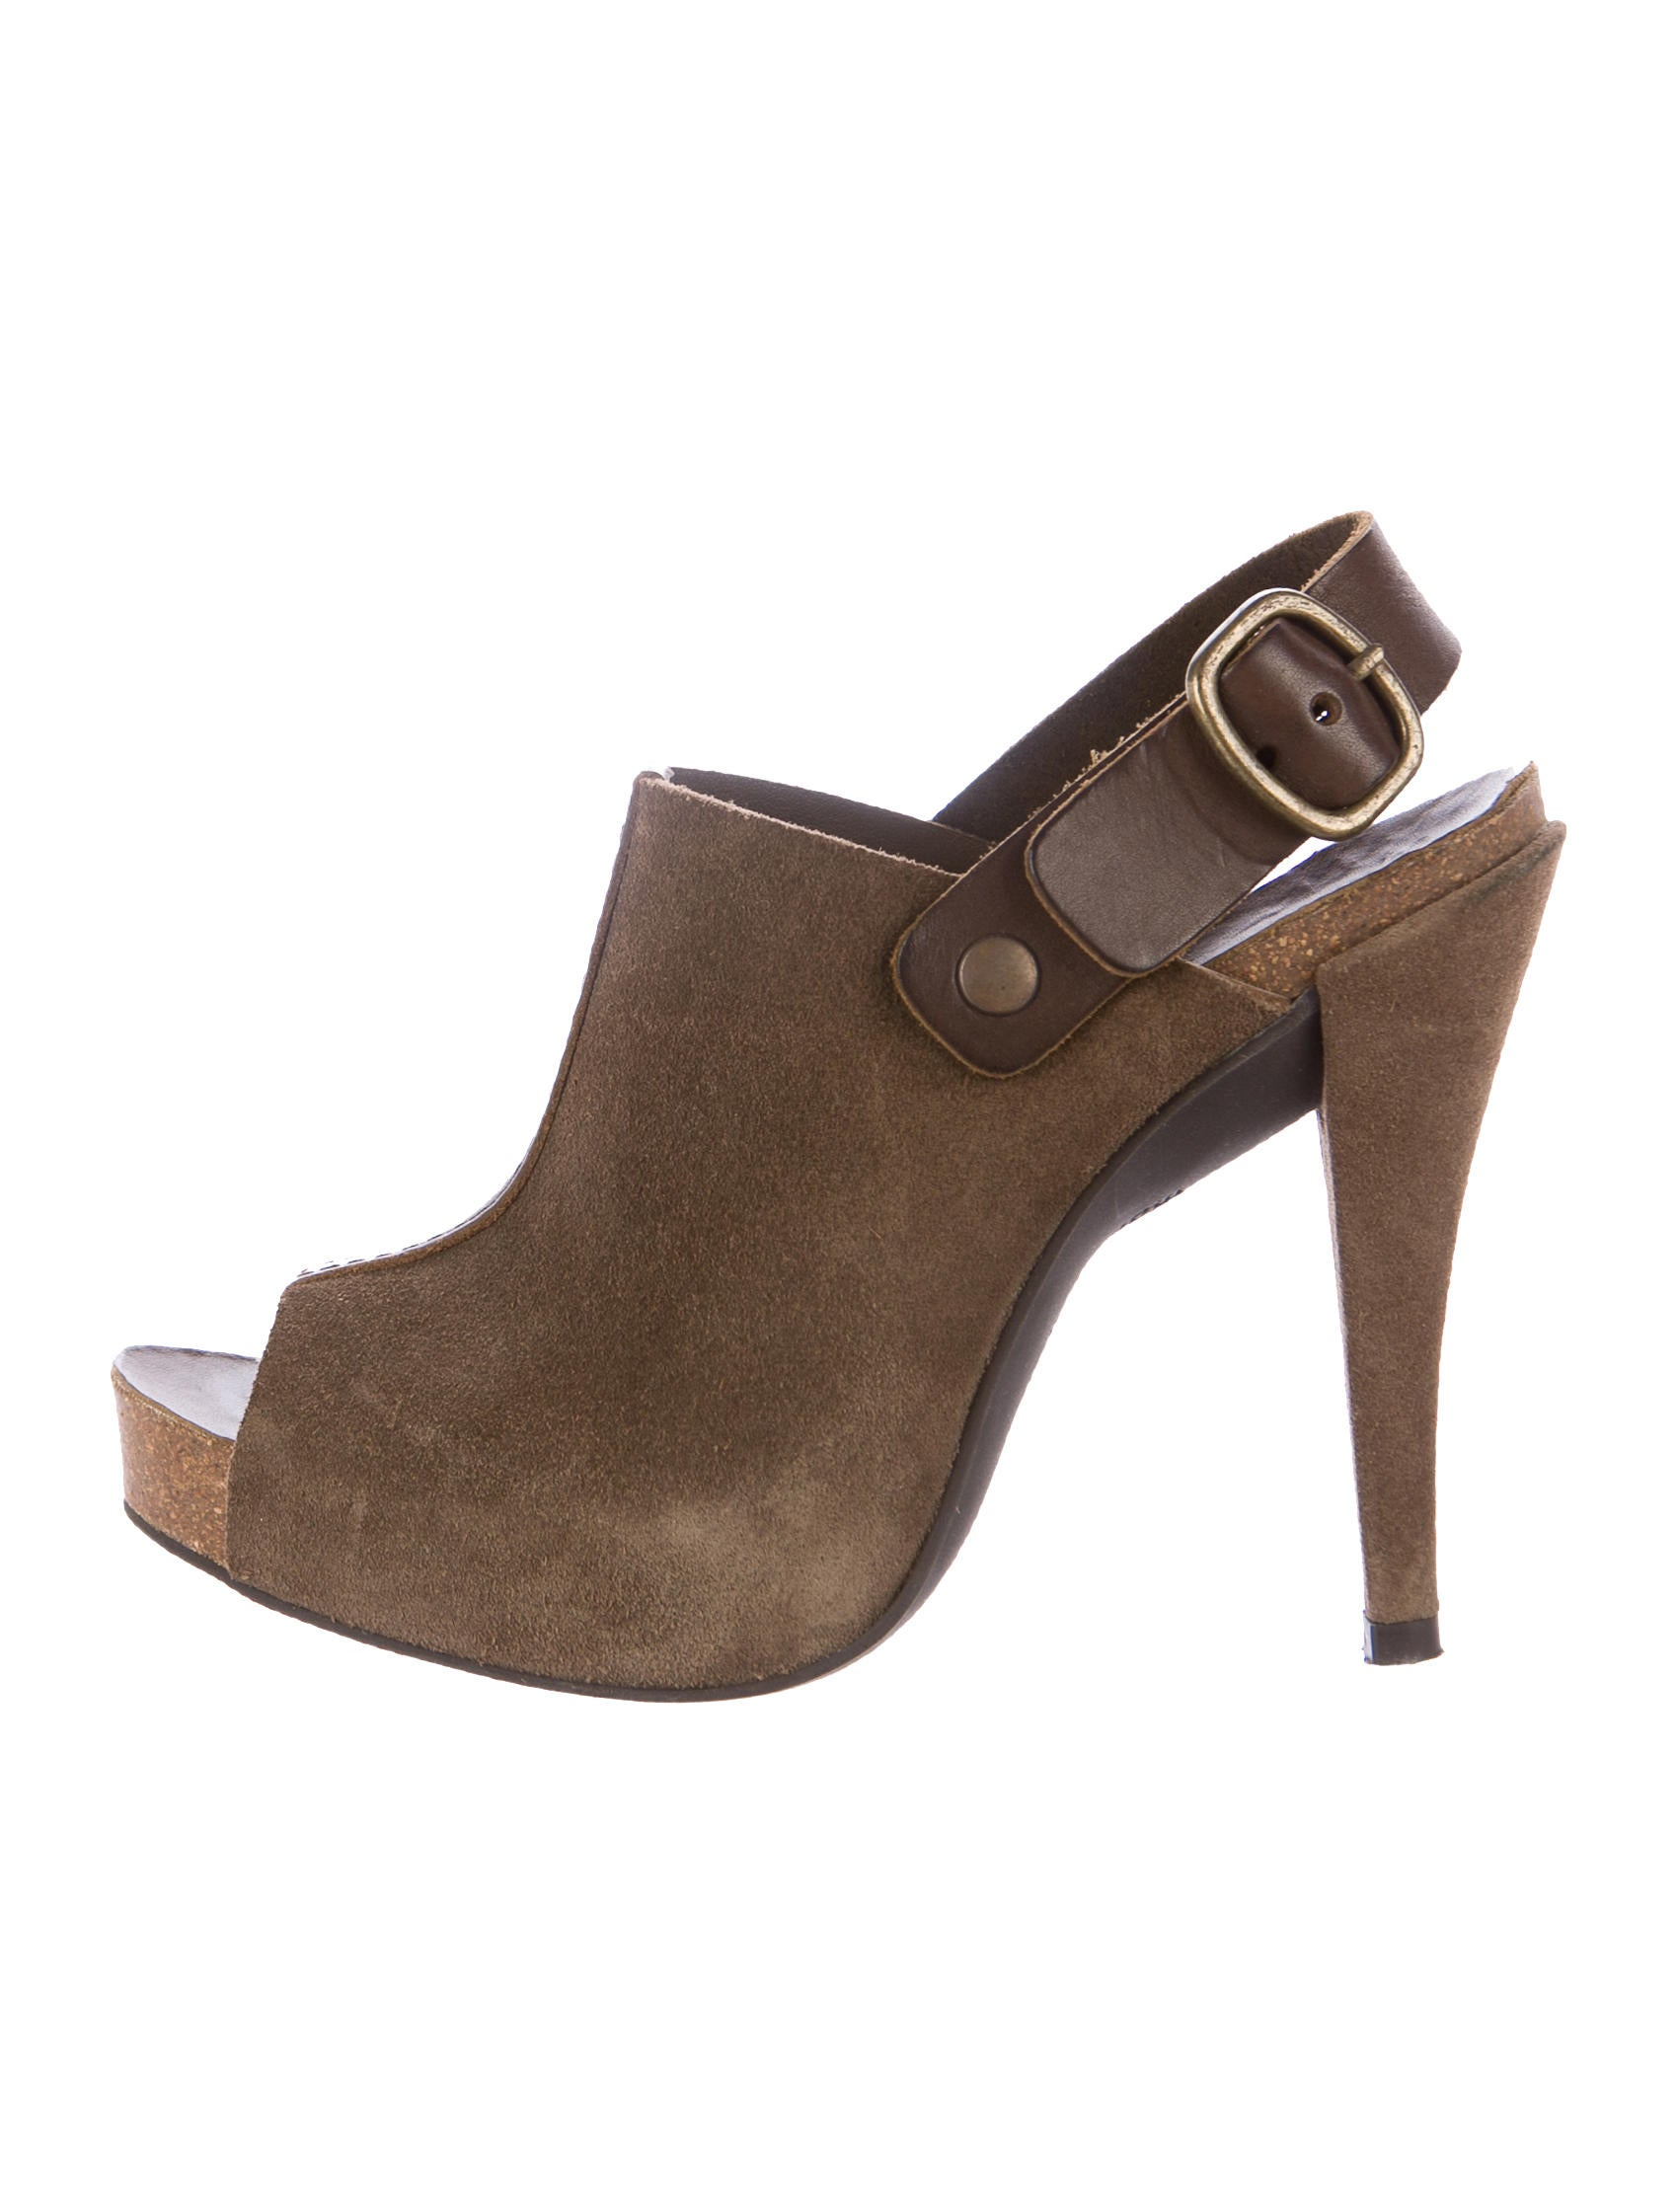 Pedro Garcia Chantal Suede Sandals Cheapest for sale for sale cheap real pay with paypal the cheapest cheap price 9u3sB4H